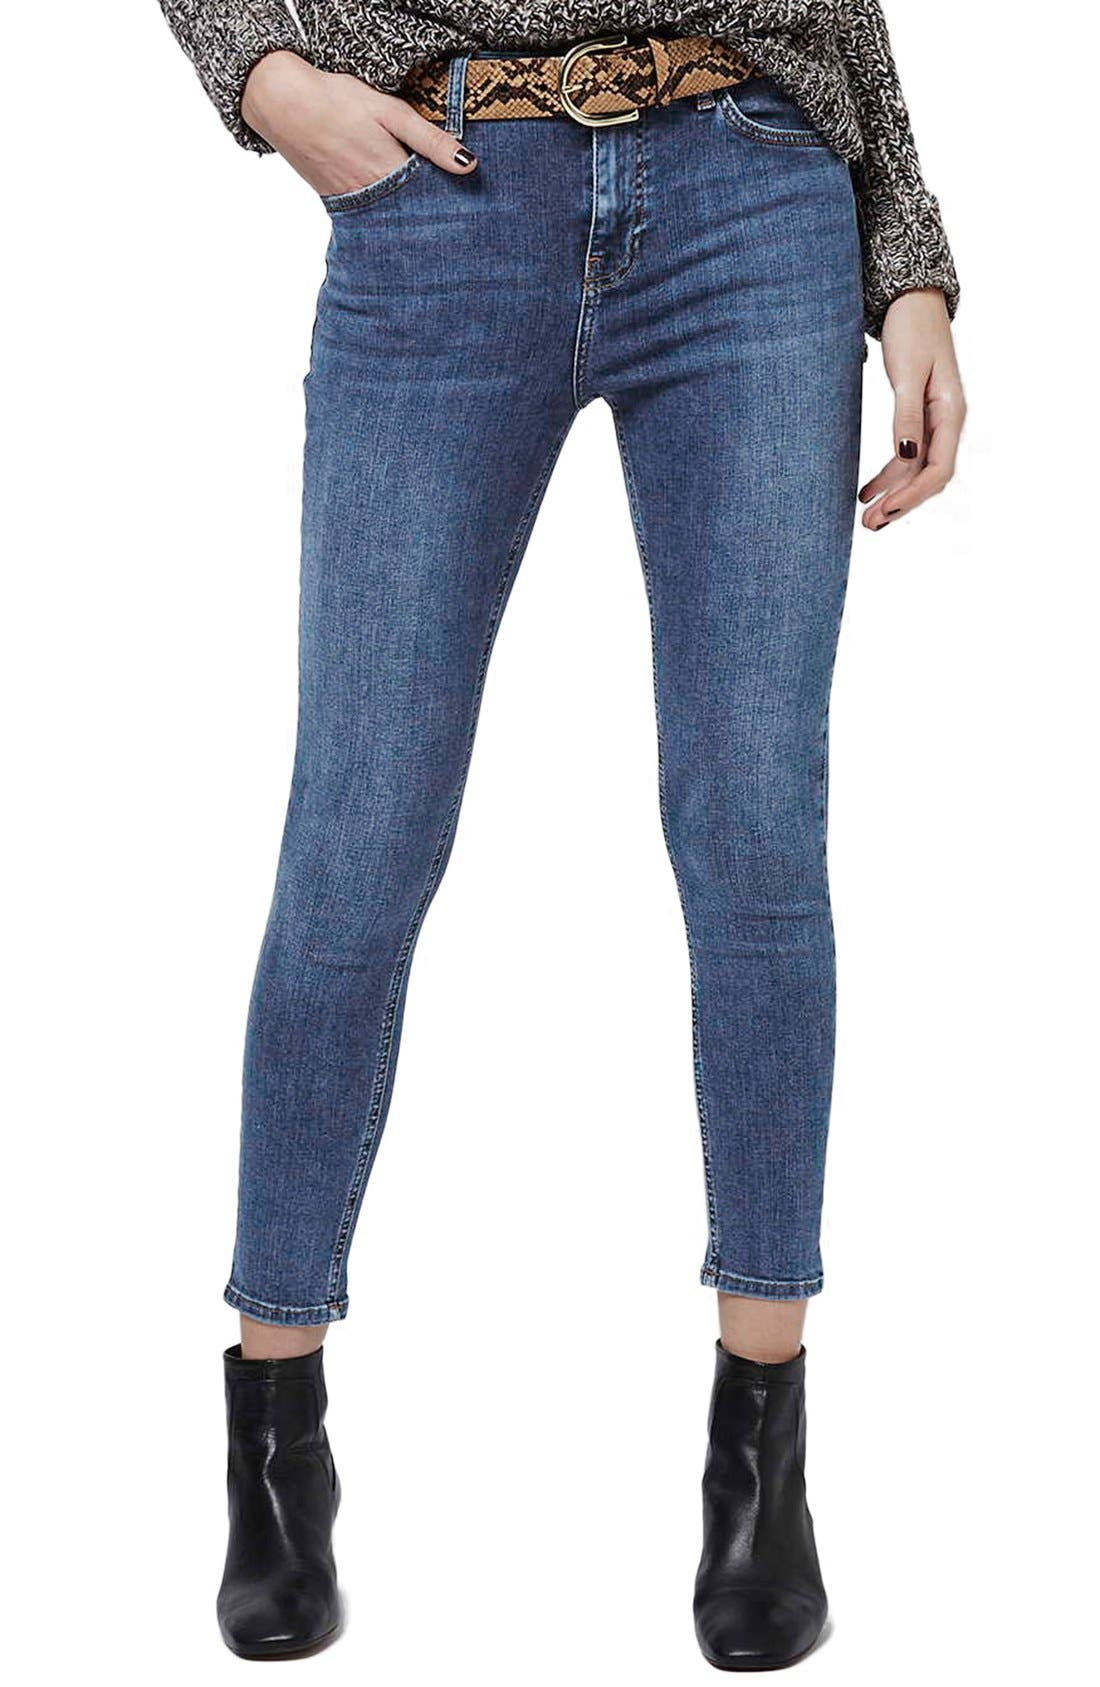 'Jamie' High Rise Ankle Skinny Jeans,                             Main thumbnail 1, color,                             MID DENIM